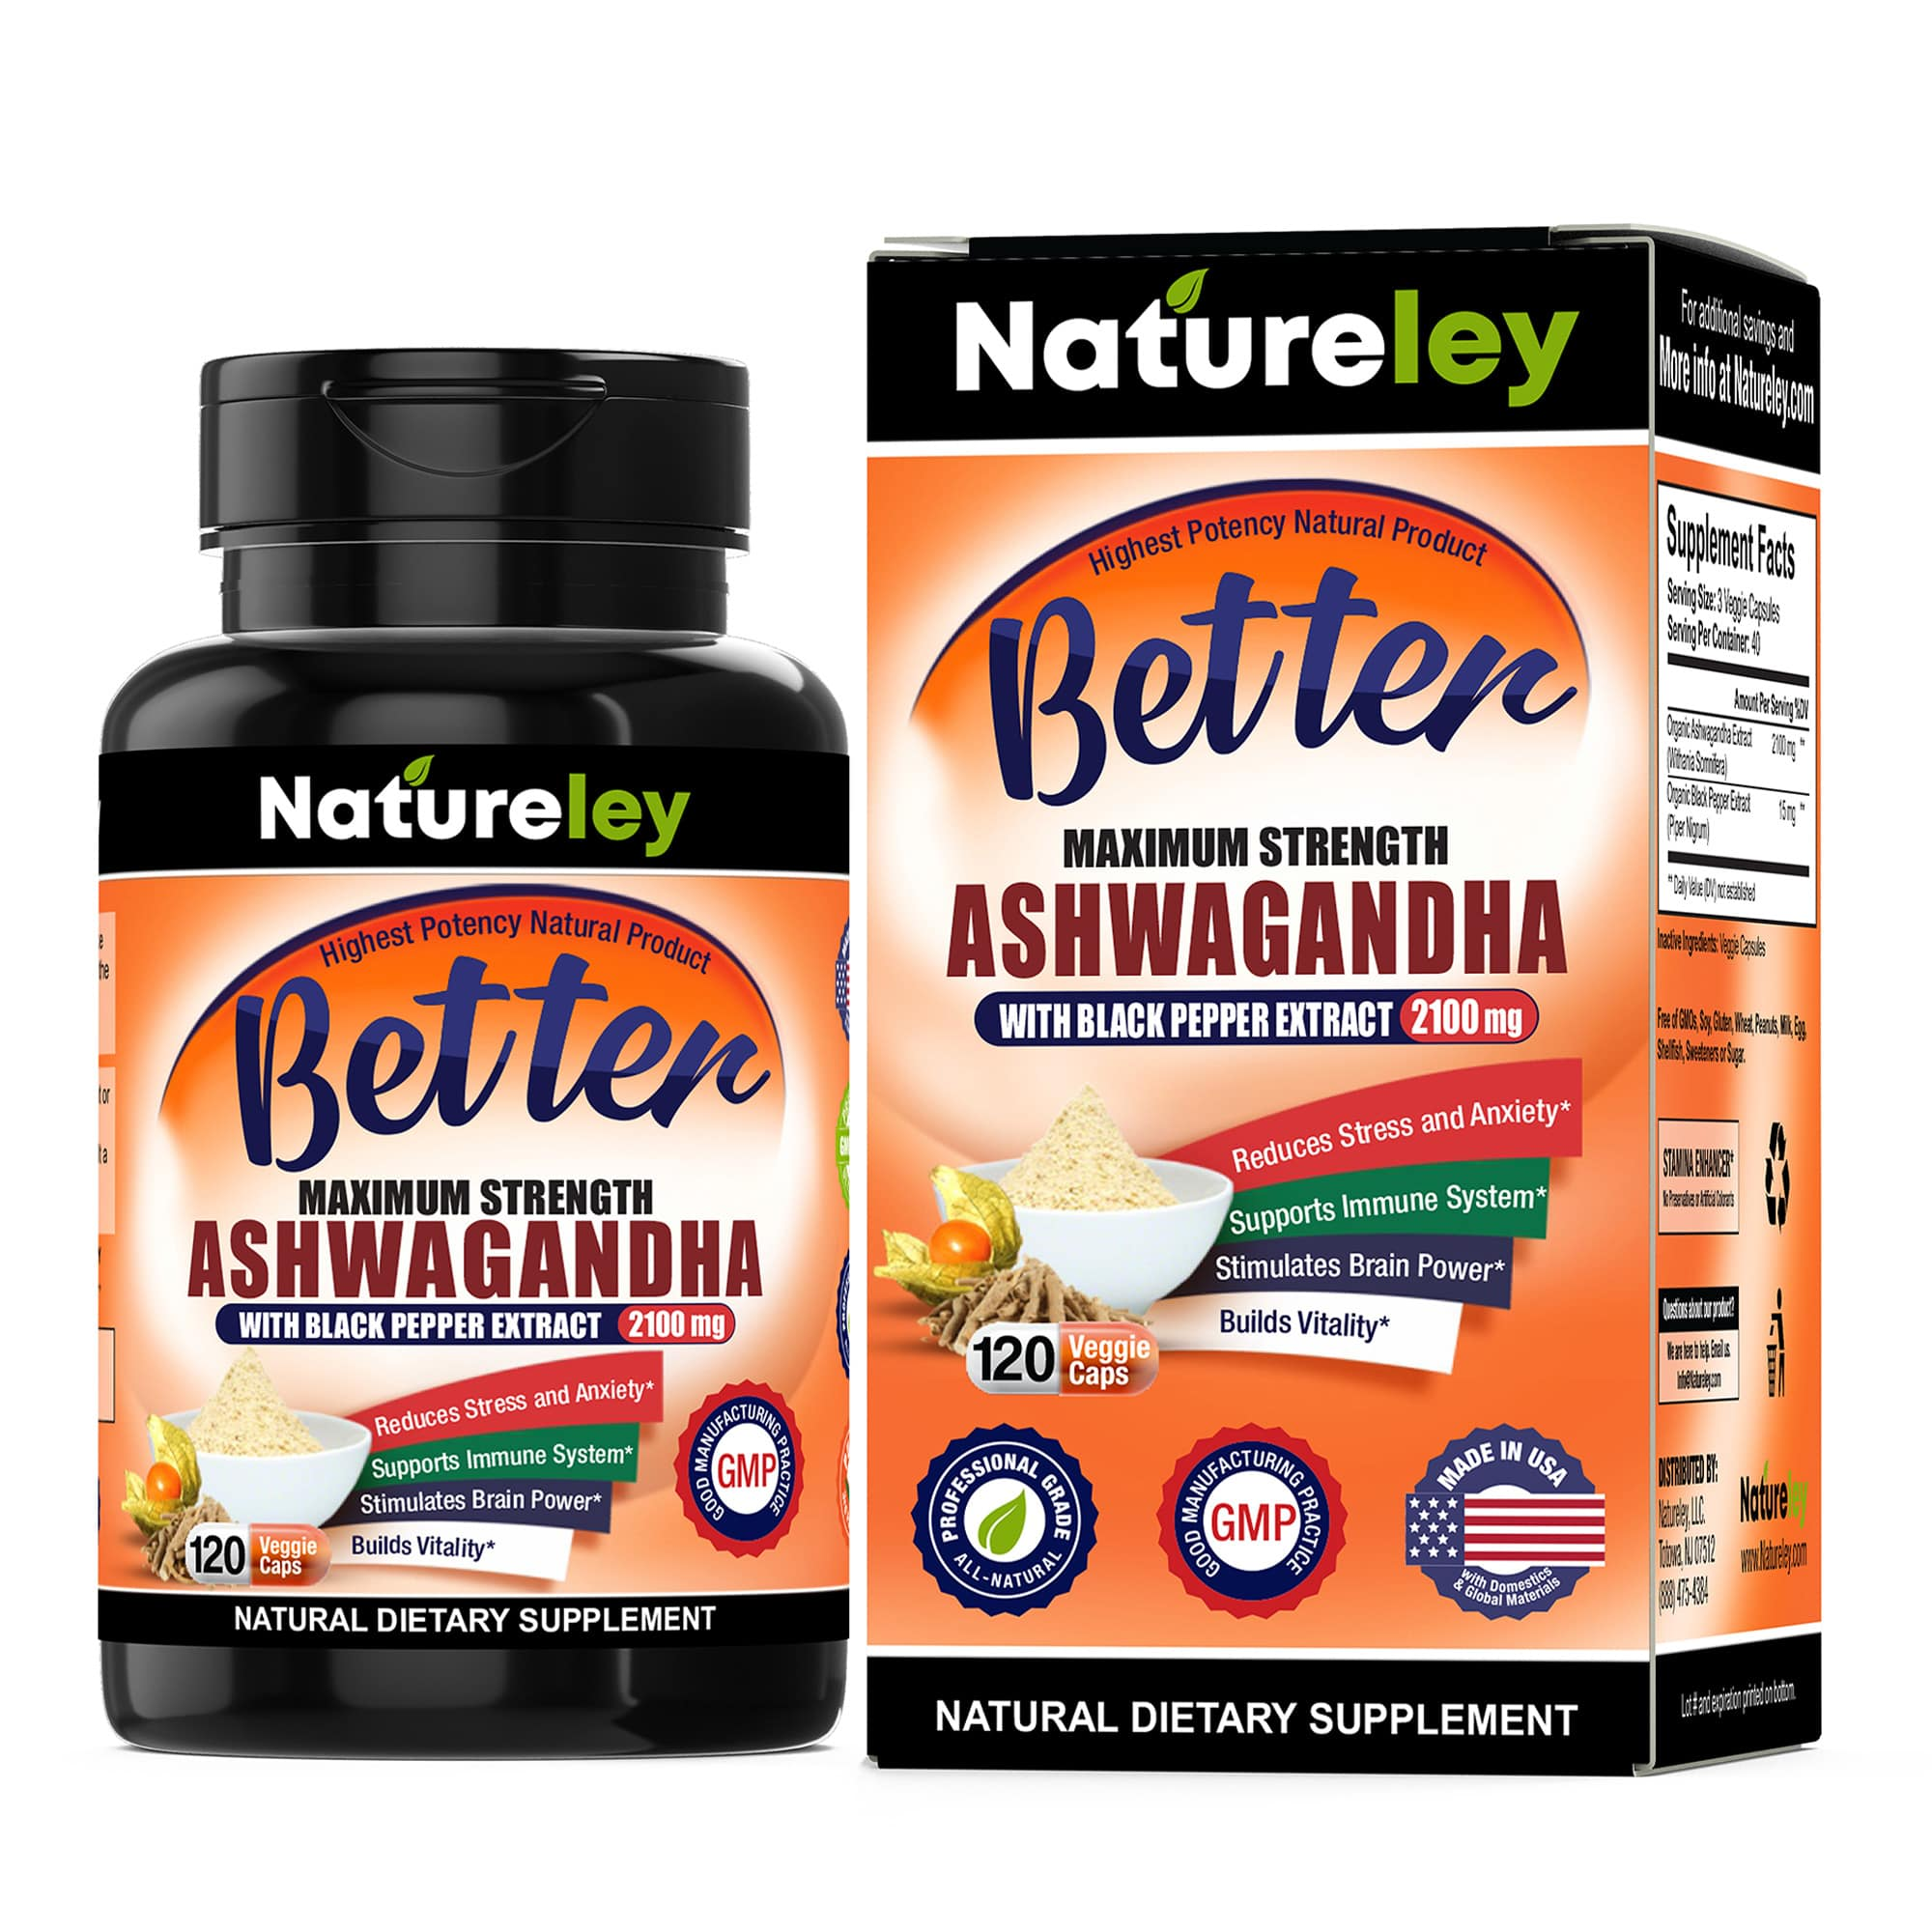 Organic Ashwagandha with Black Pepper Extract - 2100 mg 120 Caps